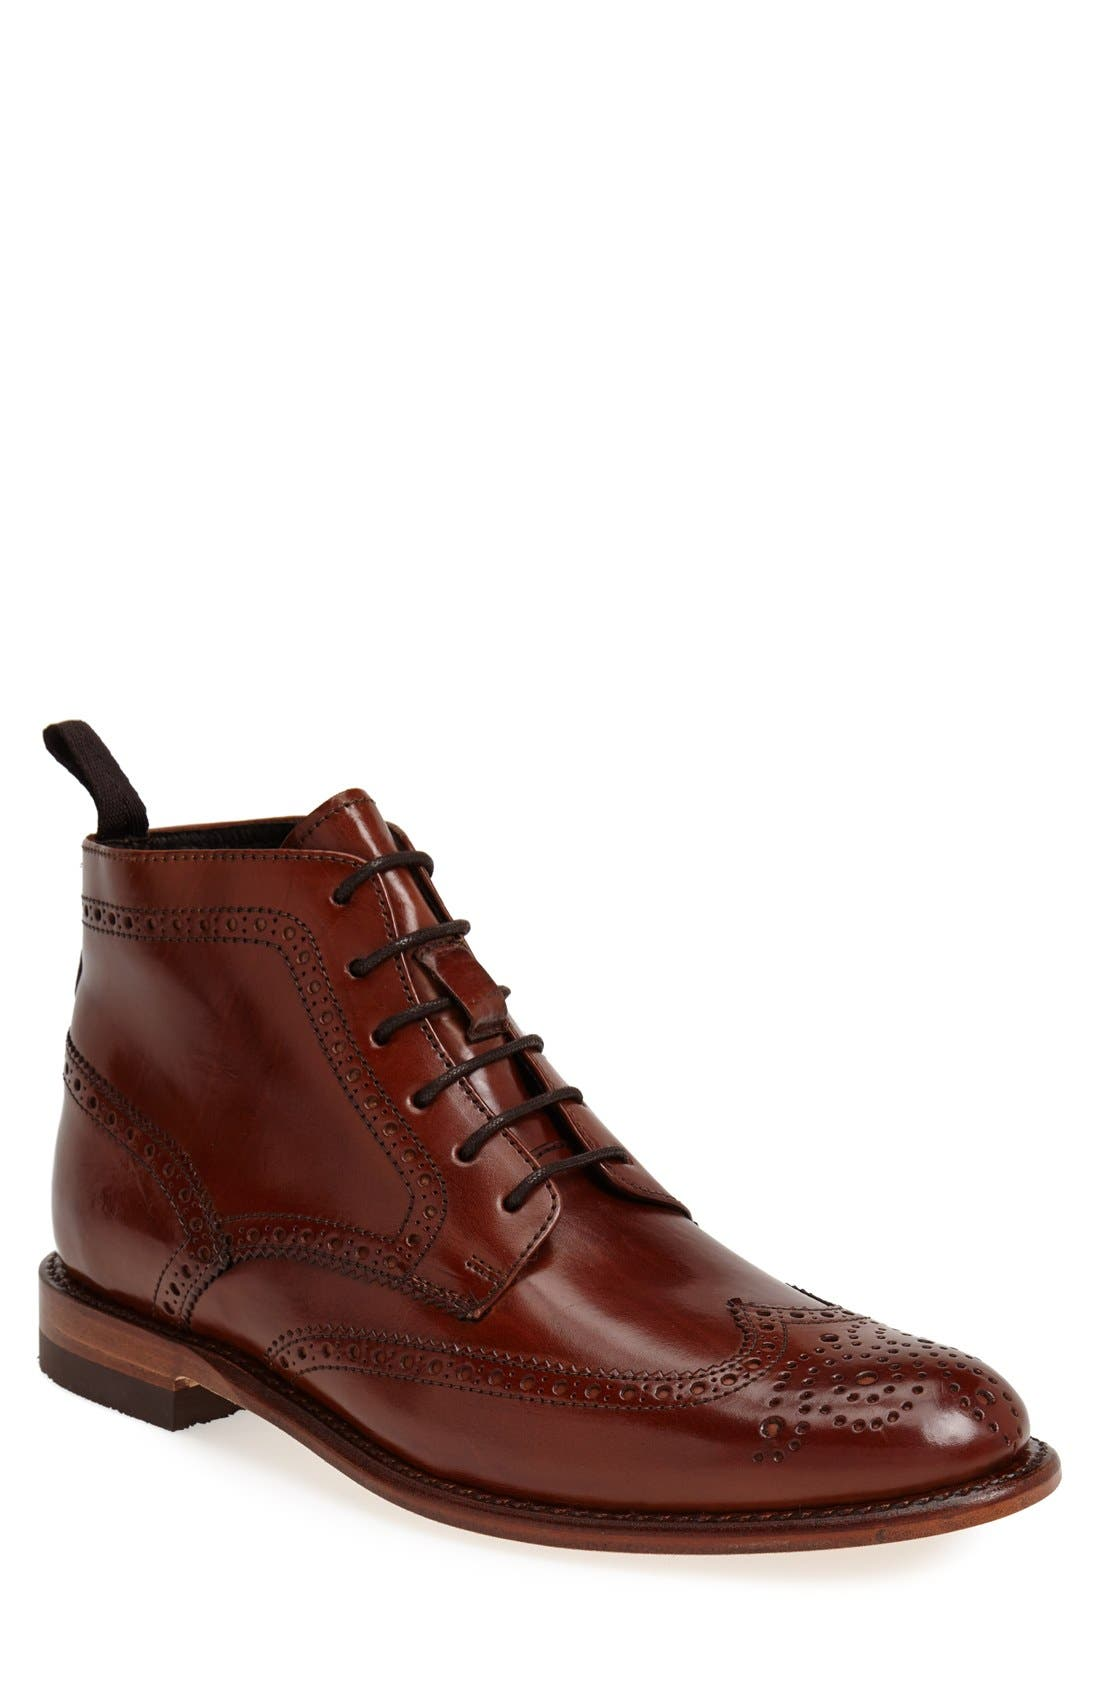 'Newport' Wingtip Boot,                             Main thumbnail 1, color,                             COGNAC